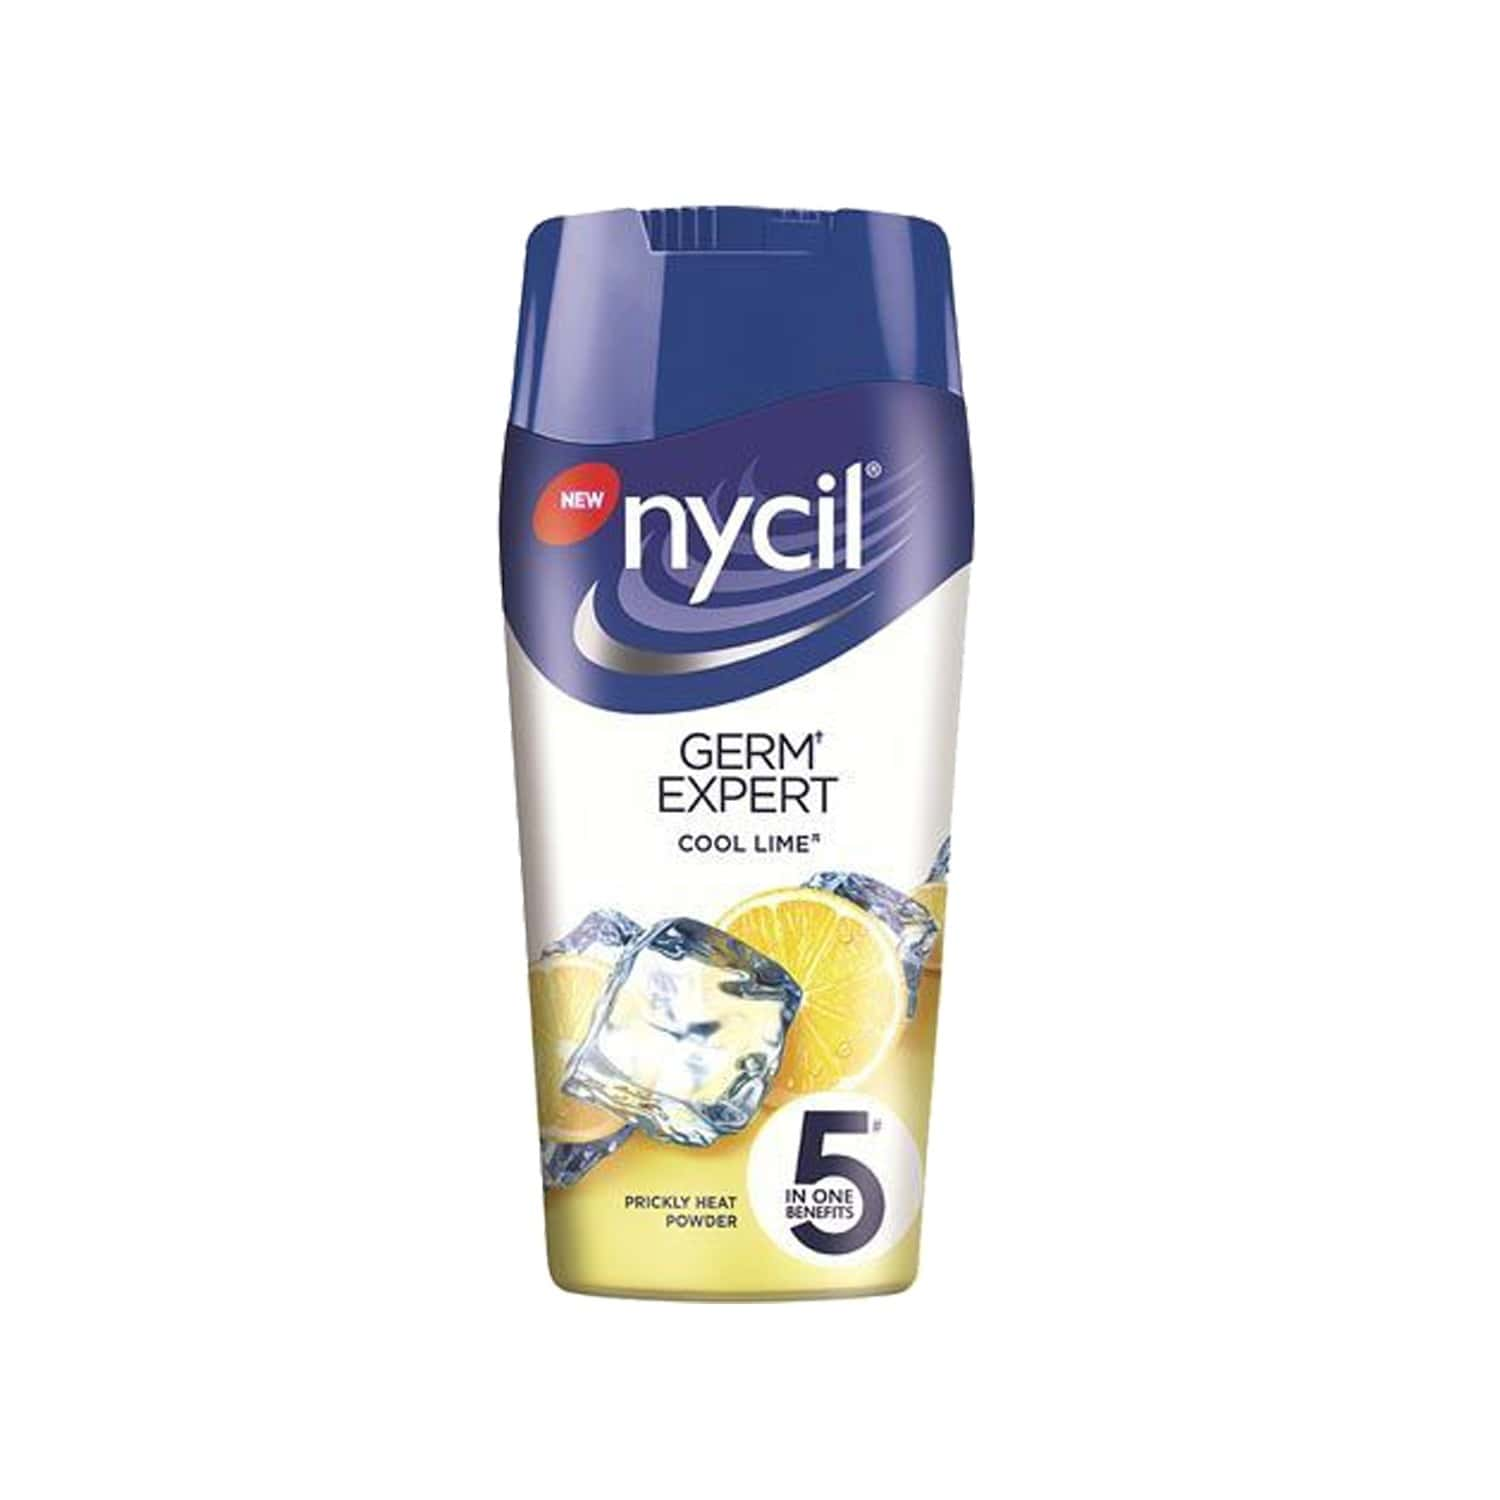 Nycil Cool Lime Prickly Heat Powder - 50gm